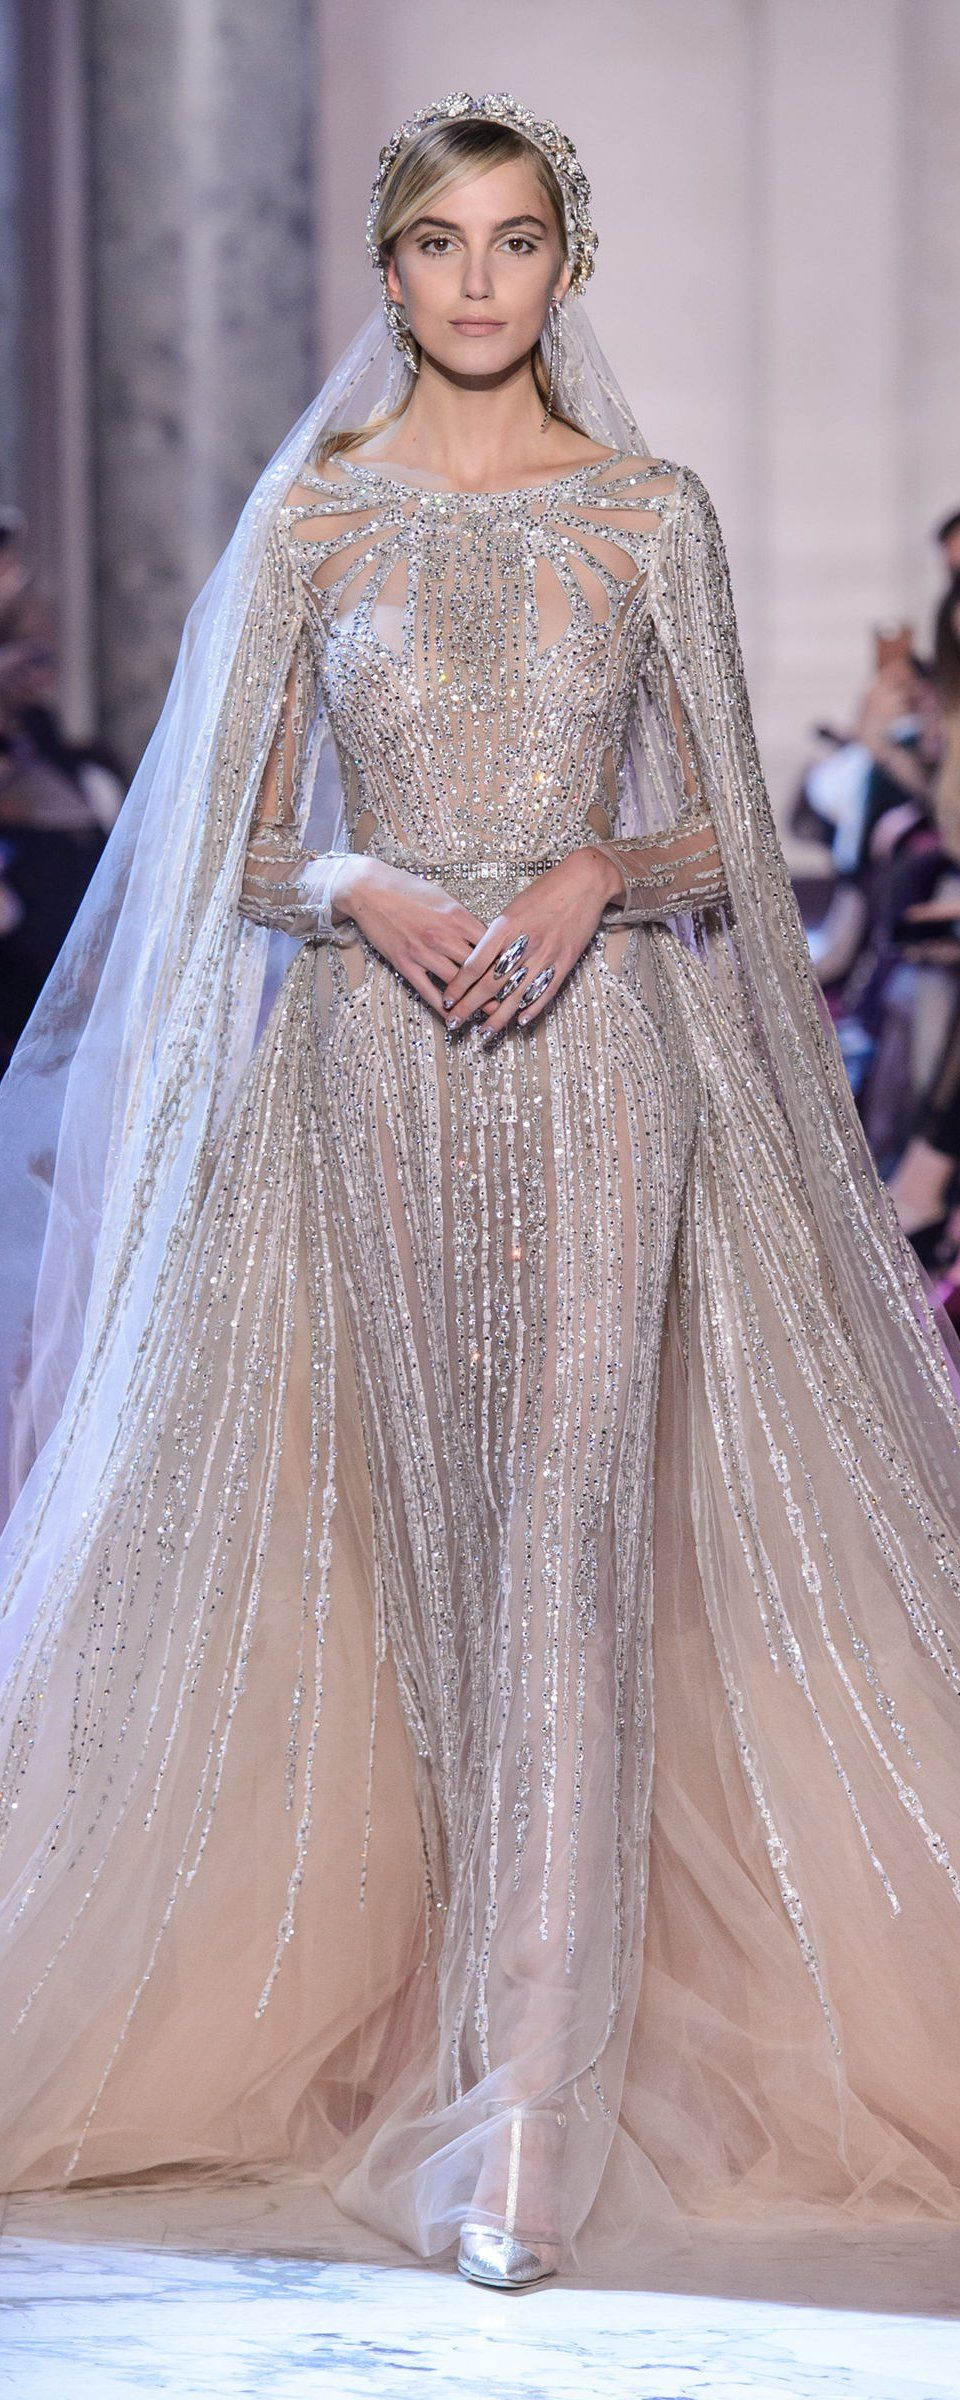 Elie Saab Spring summer 2018 Couture in 2019 | Brides